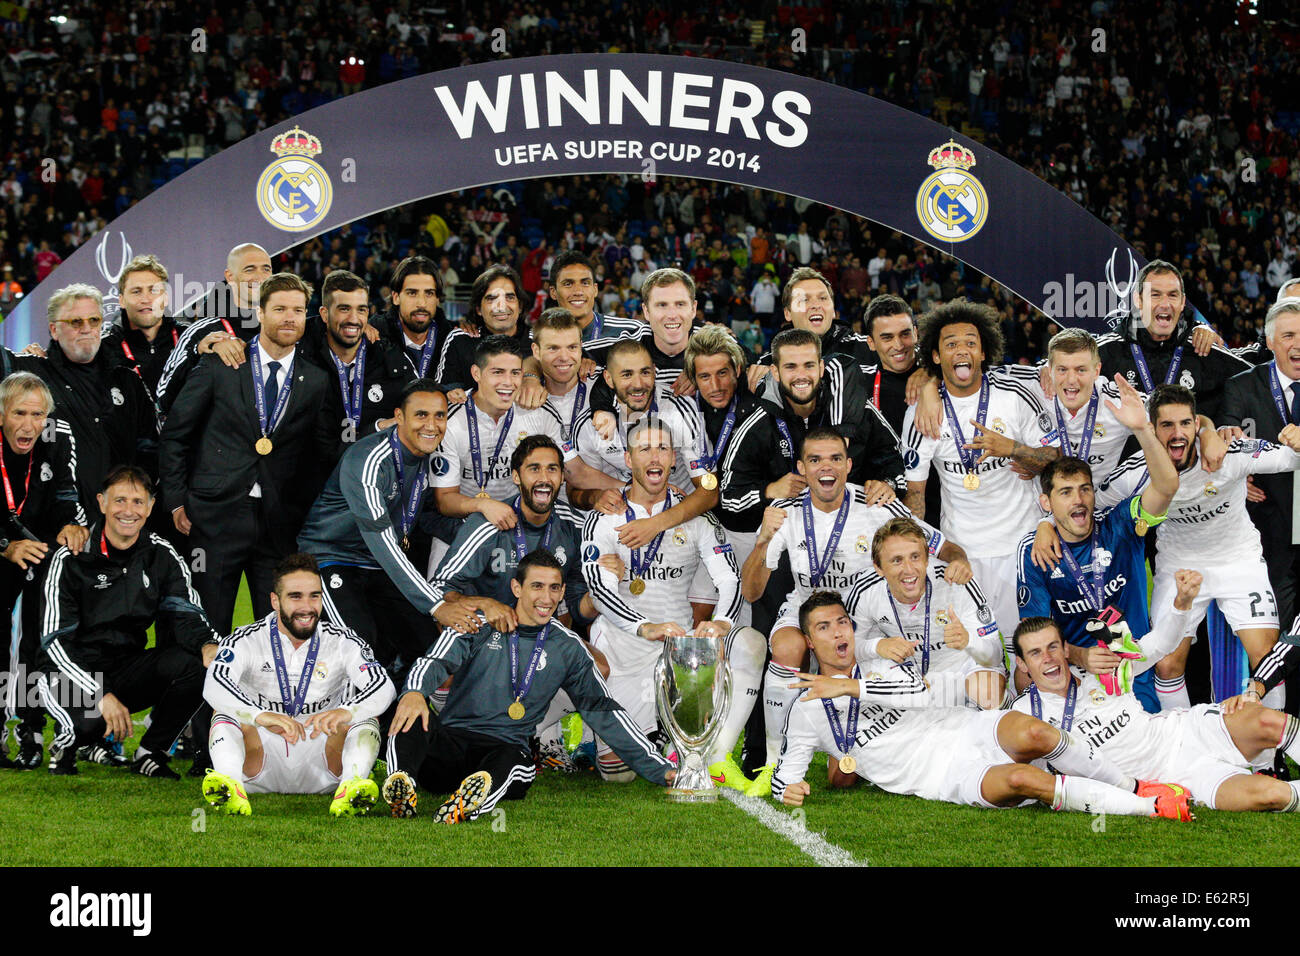 Cardiff, Wales. 12th Aug, 2014. UEFA Super Cup. Real Madrid CF v Sevilla FC. Real Madrid CF squad celebrate their - Stock Image